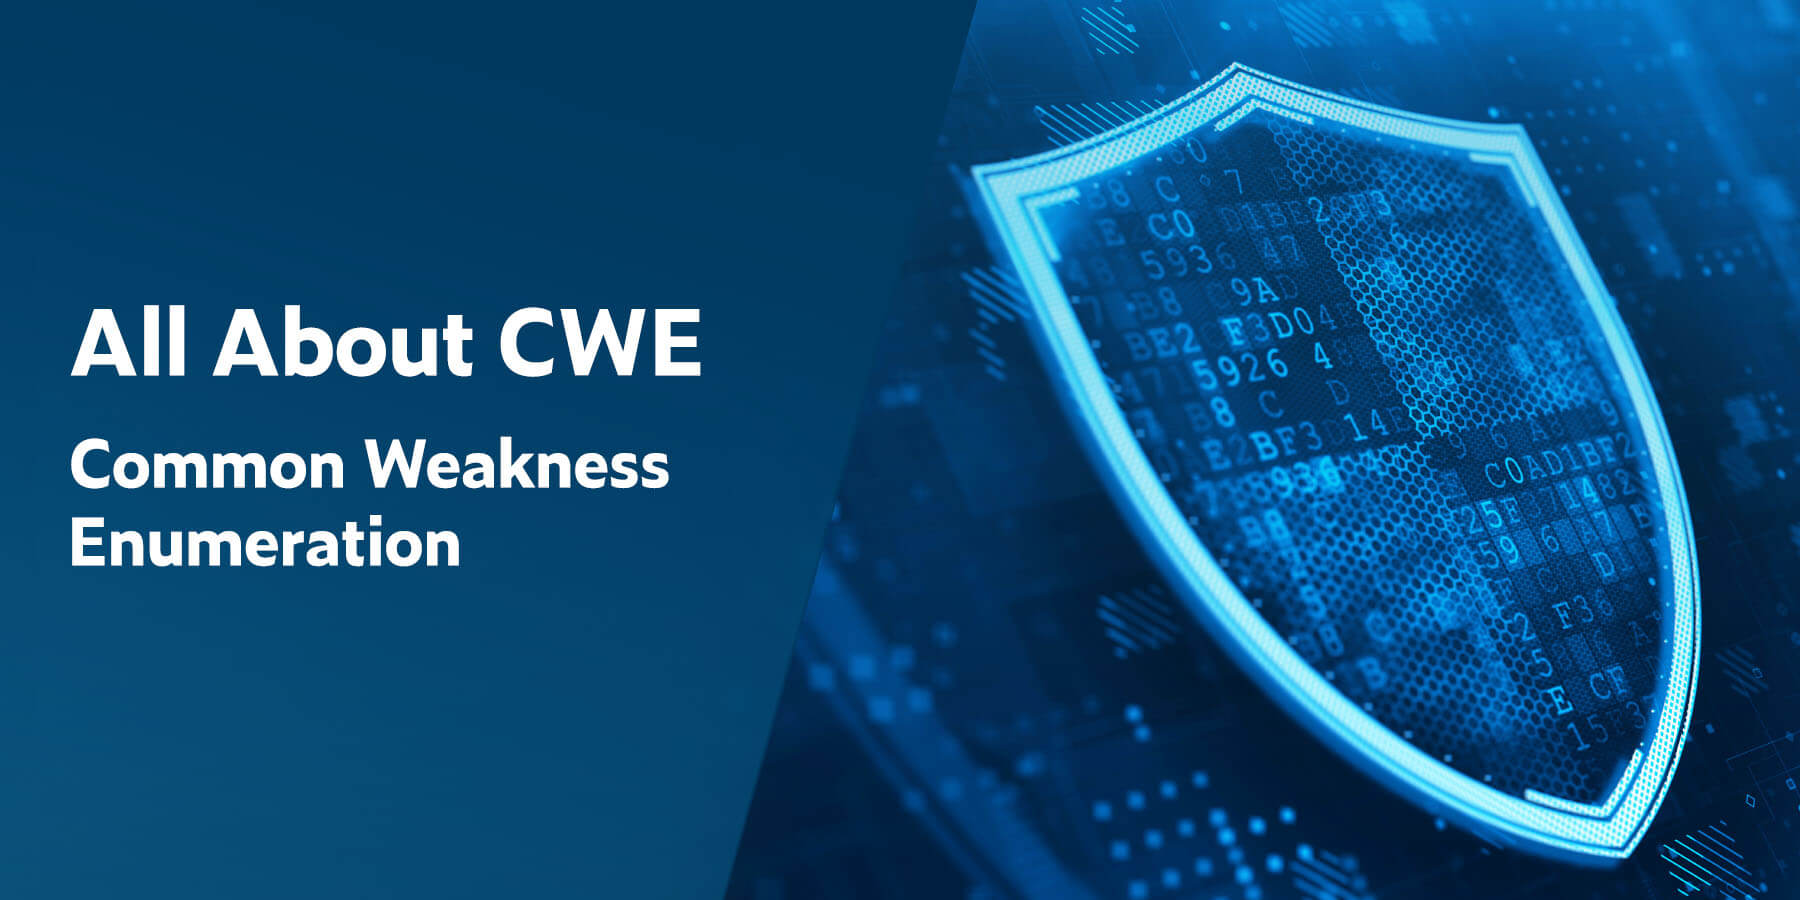 All About CWE: Common Weakness Enumeration